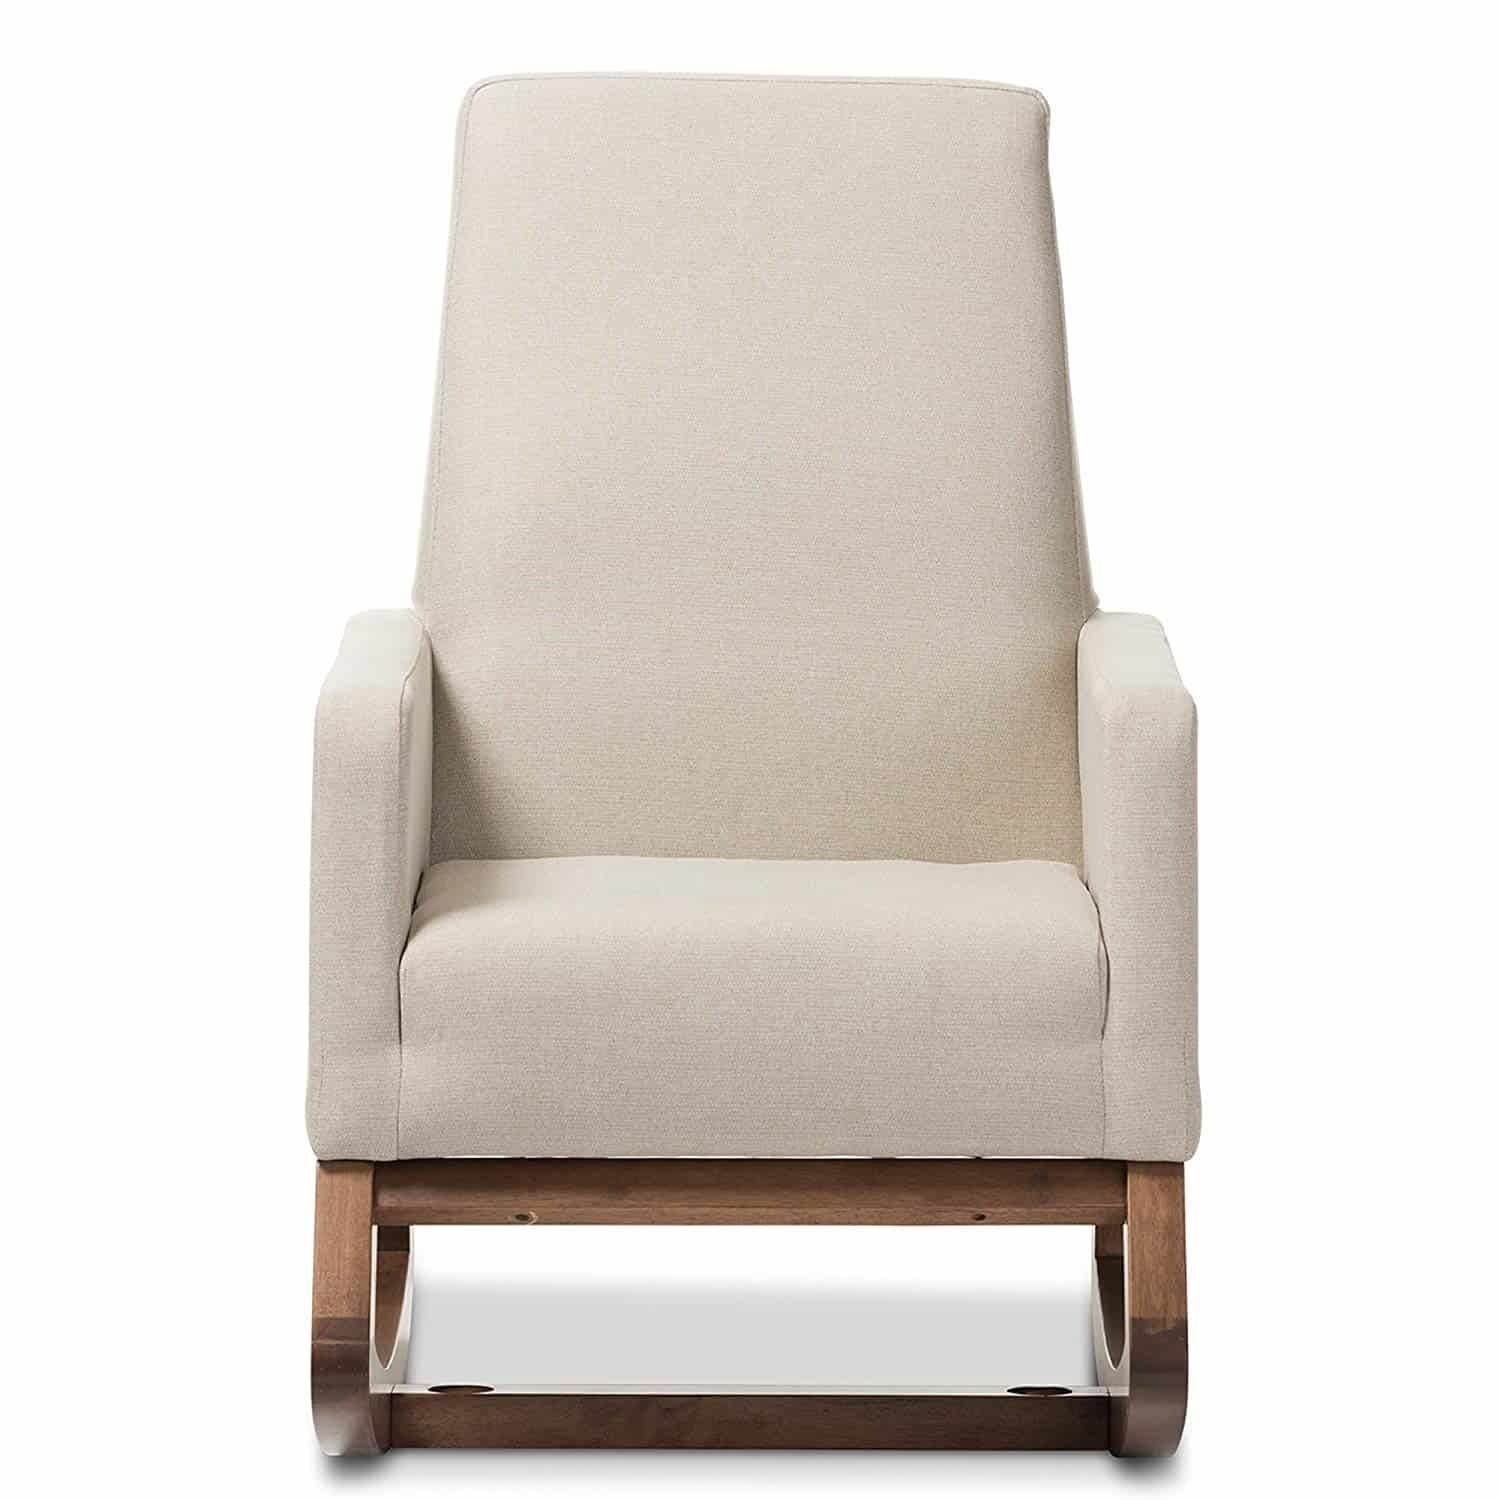 Inspiration about The Very Best Upholstered Rocking Chair Throughout Rocking Chairs With Lumbar Support (#11 of 15)